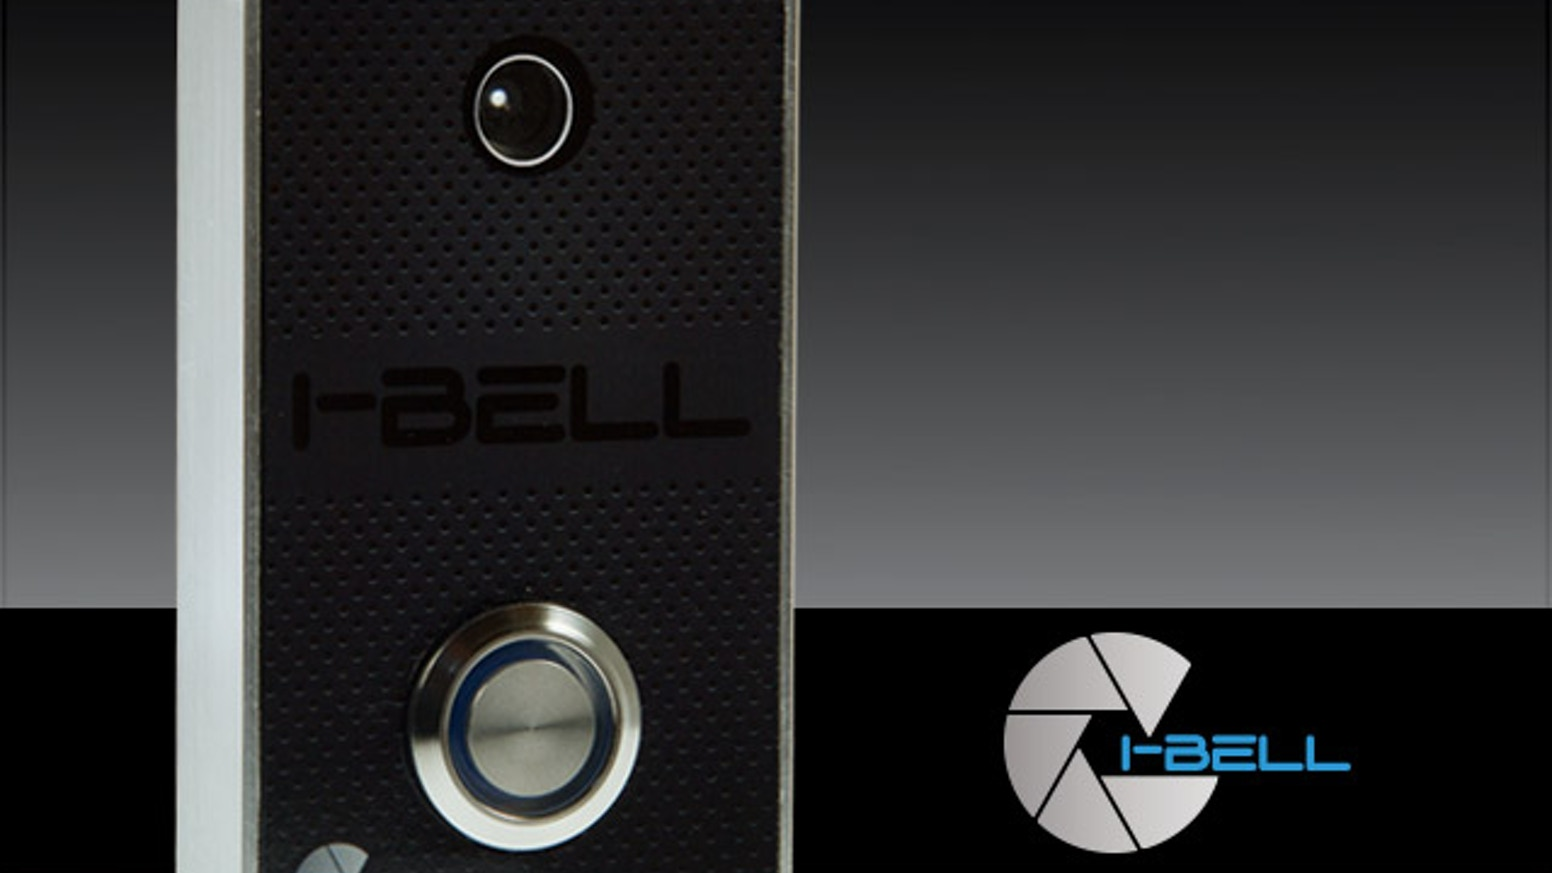 Wireless Controlled Doorbell Electronics Project I Bell By Ltd Kickstarter Is An Amazing New Wifi Video That Connects Direct To Your Smartphone Wherever You Are Whatever Doing